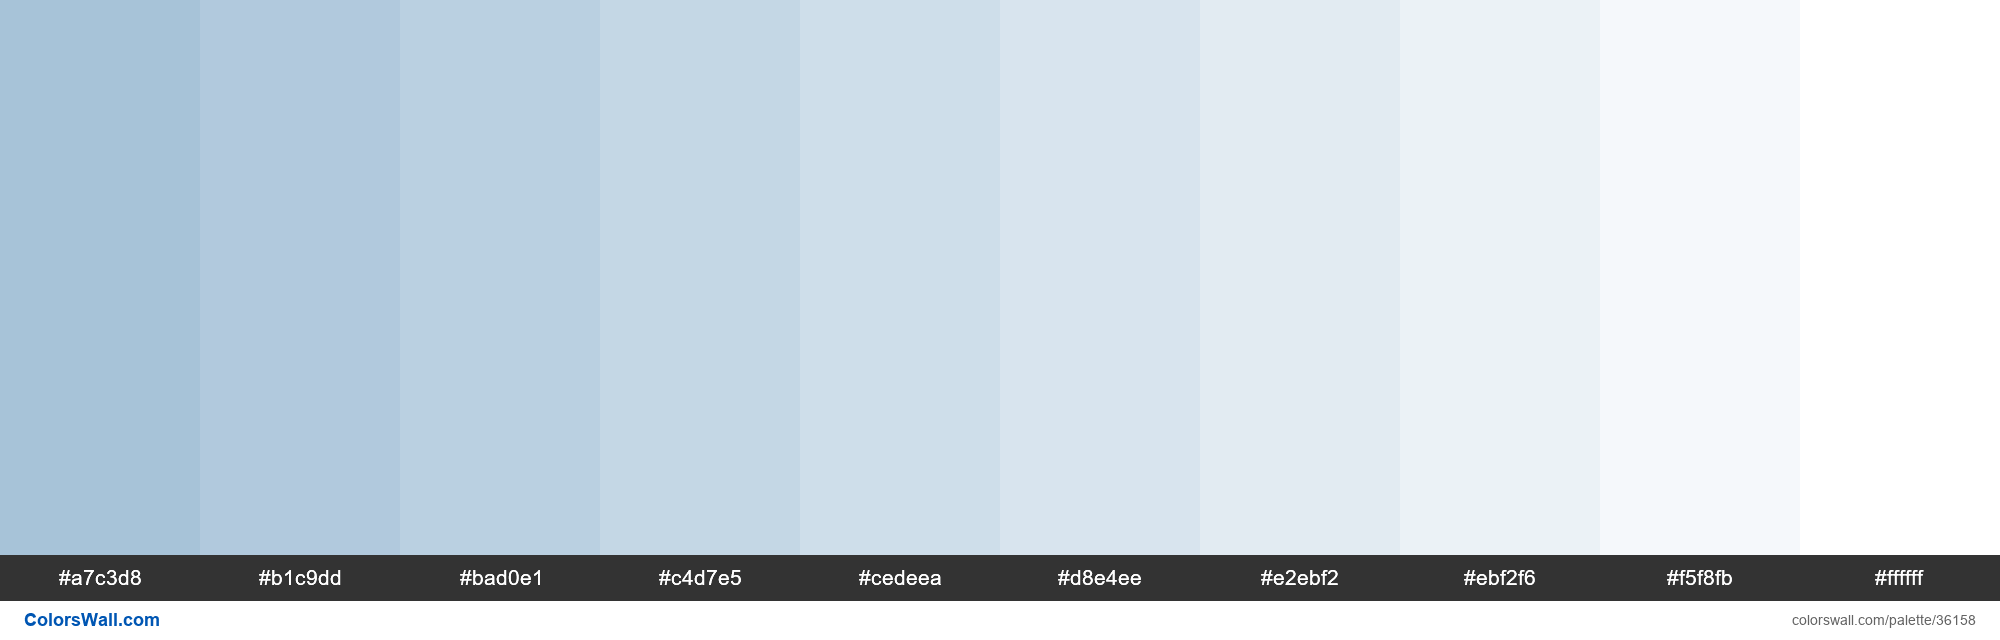 Tints XKCD Color light grey blue #9dbcd4 hex - #36158